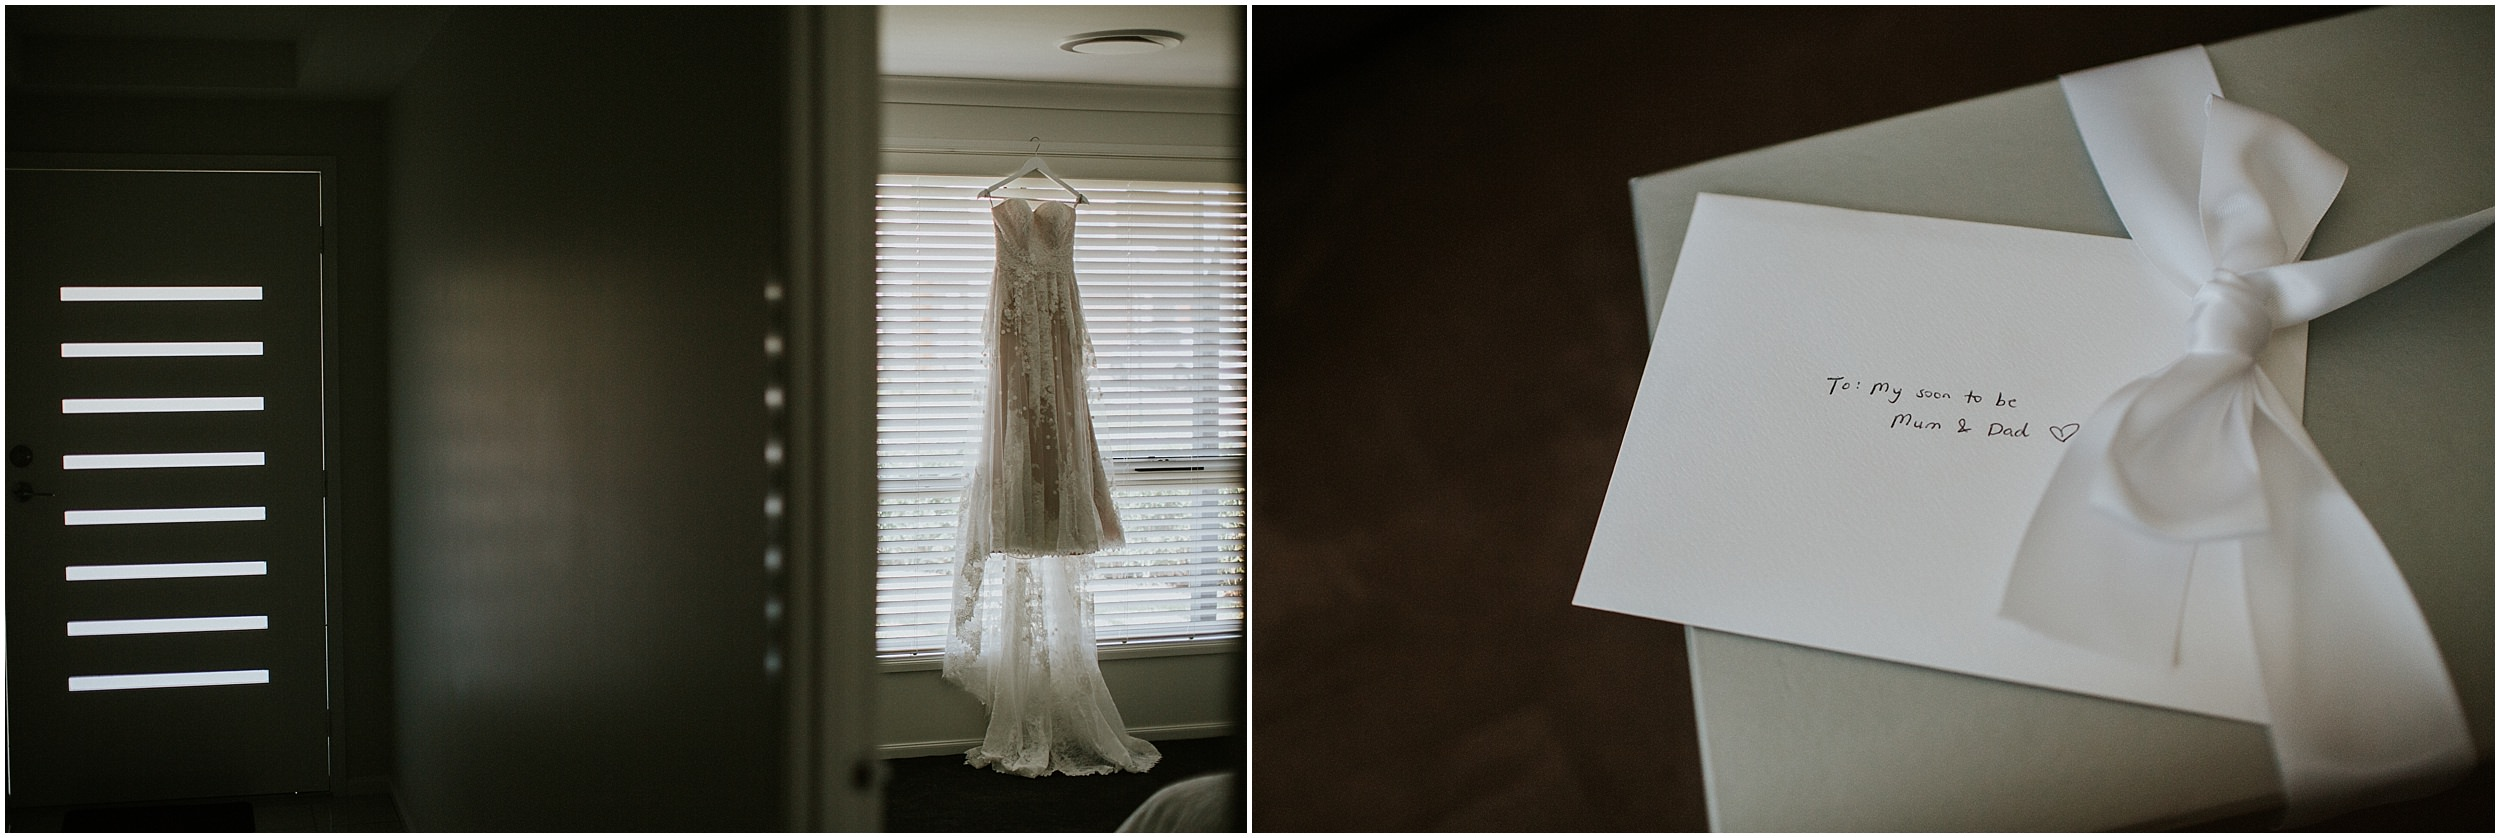 Curzon Hall Wedding - Russell Stafford Photography